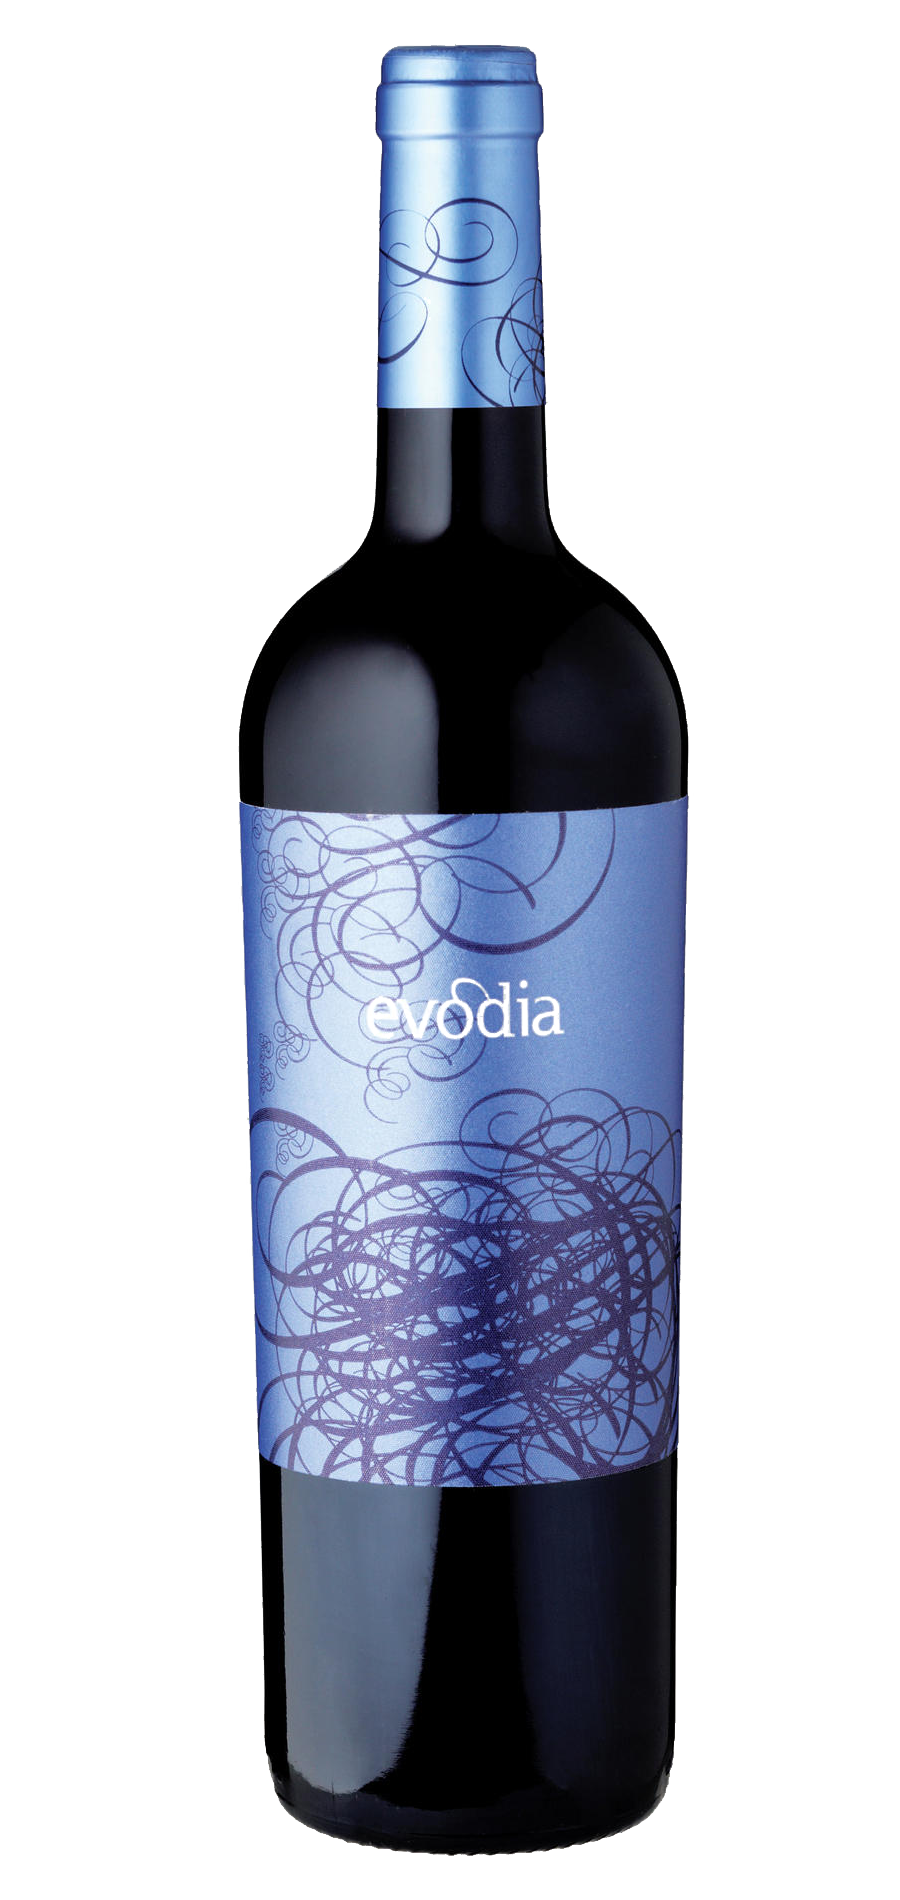 Evodia wine bottle design